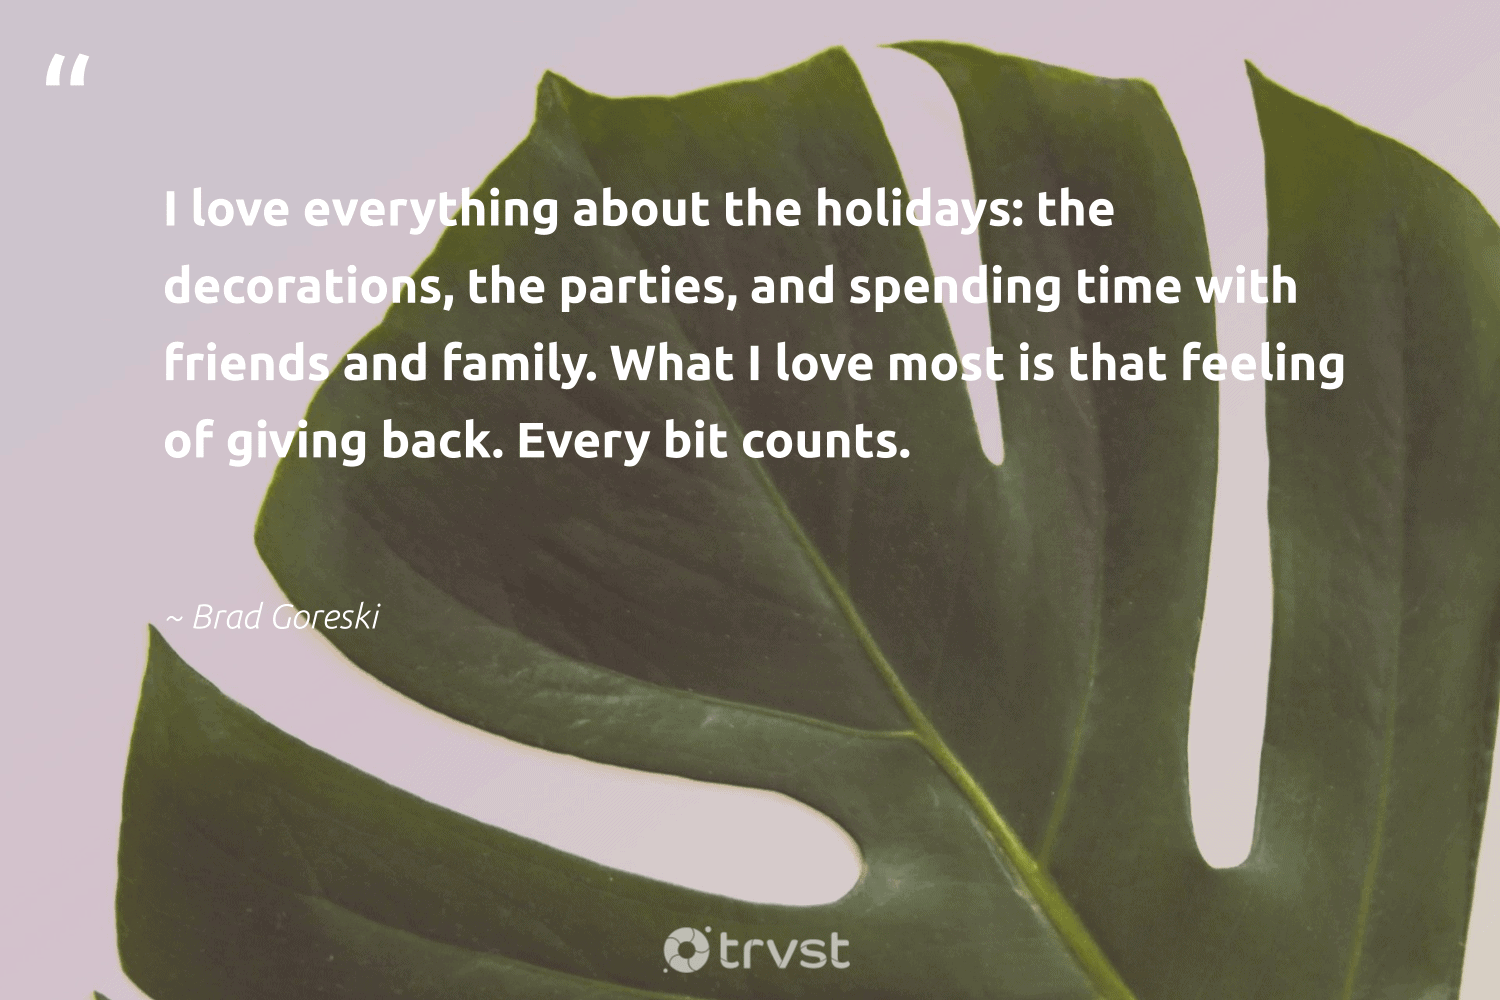 """""""I love everything about the holidays: the decorations, the parties, and spending time with friends and family. What I love most is that feeling of giving back. Every bit counts.""""  - Brad Goreski #trvst #quotes #givingback #love #family #giveback #socialgood #togetherwecan #changemakers #dogood #itscooltobekind #giveforthefuture"""